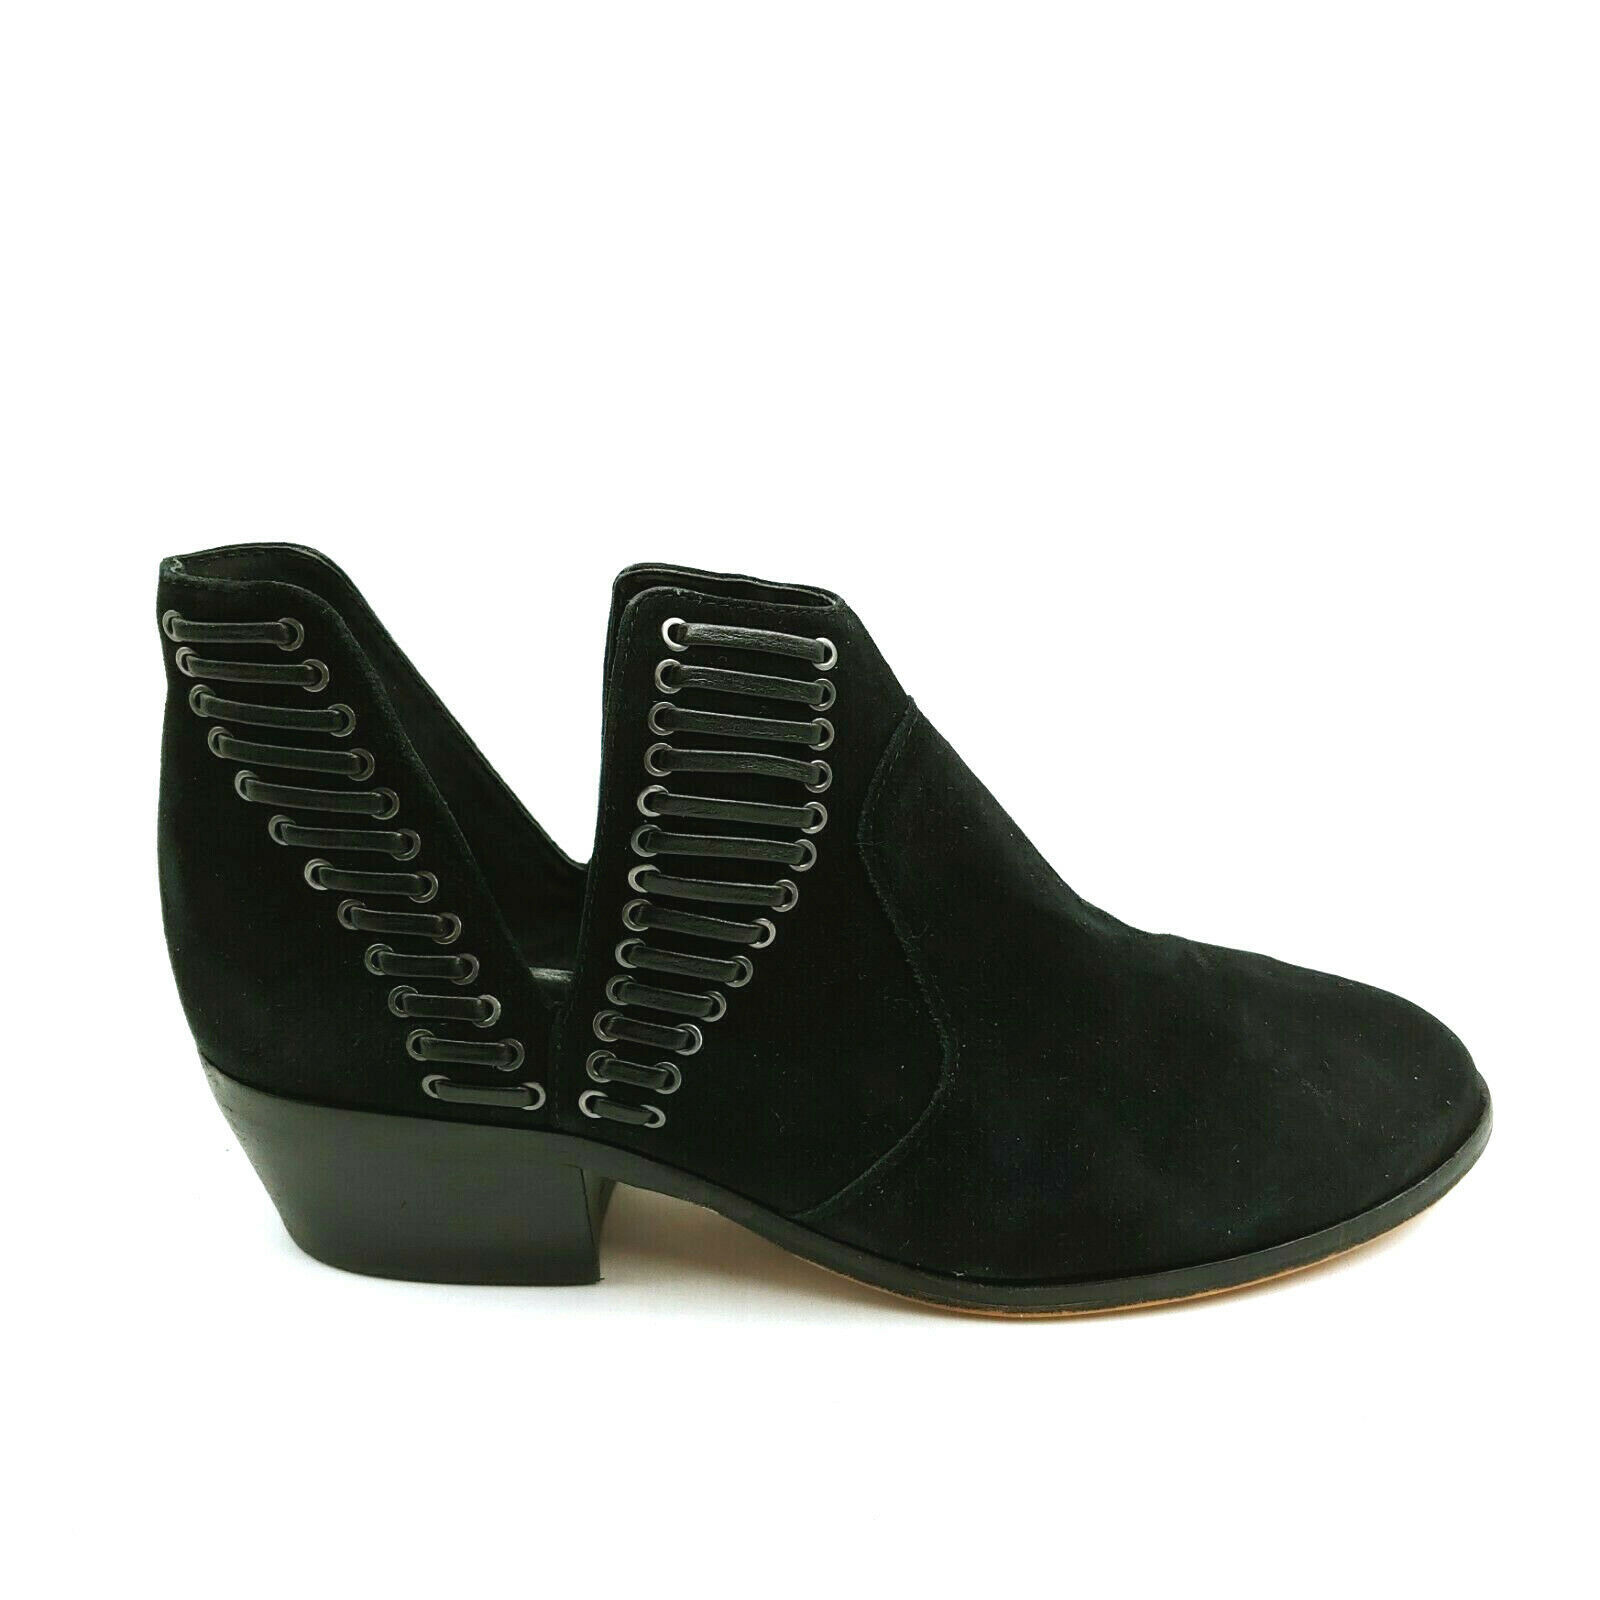 Primary image for Vince Camuto Womans Pevista Ankle Bootie Black Suede Cushioned Insole Sz 9.5W